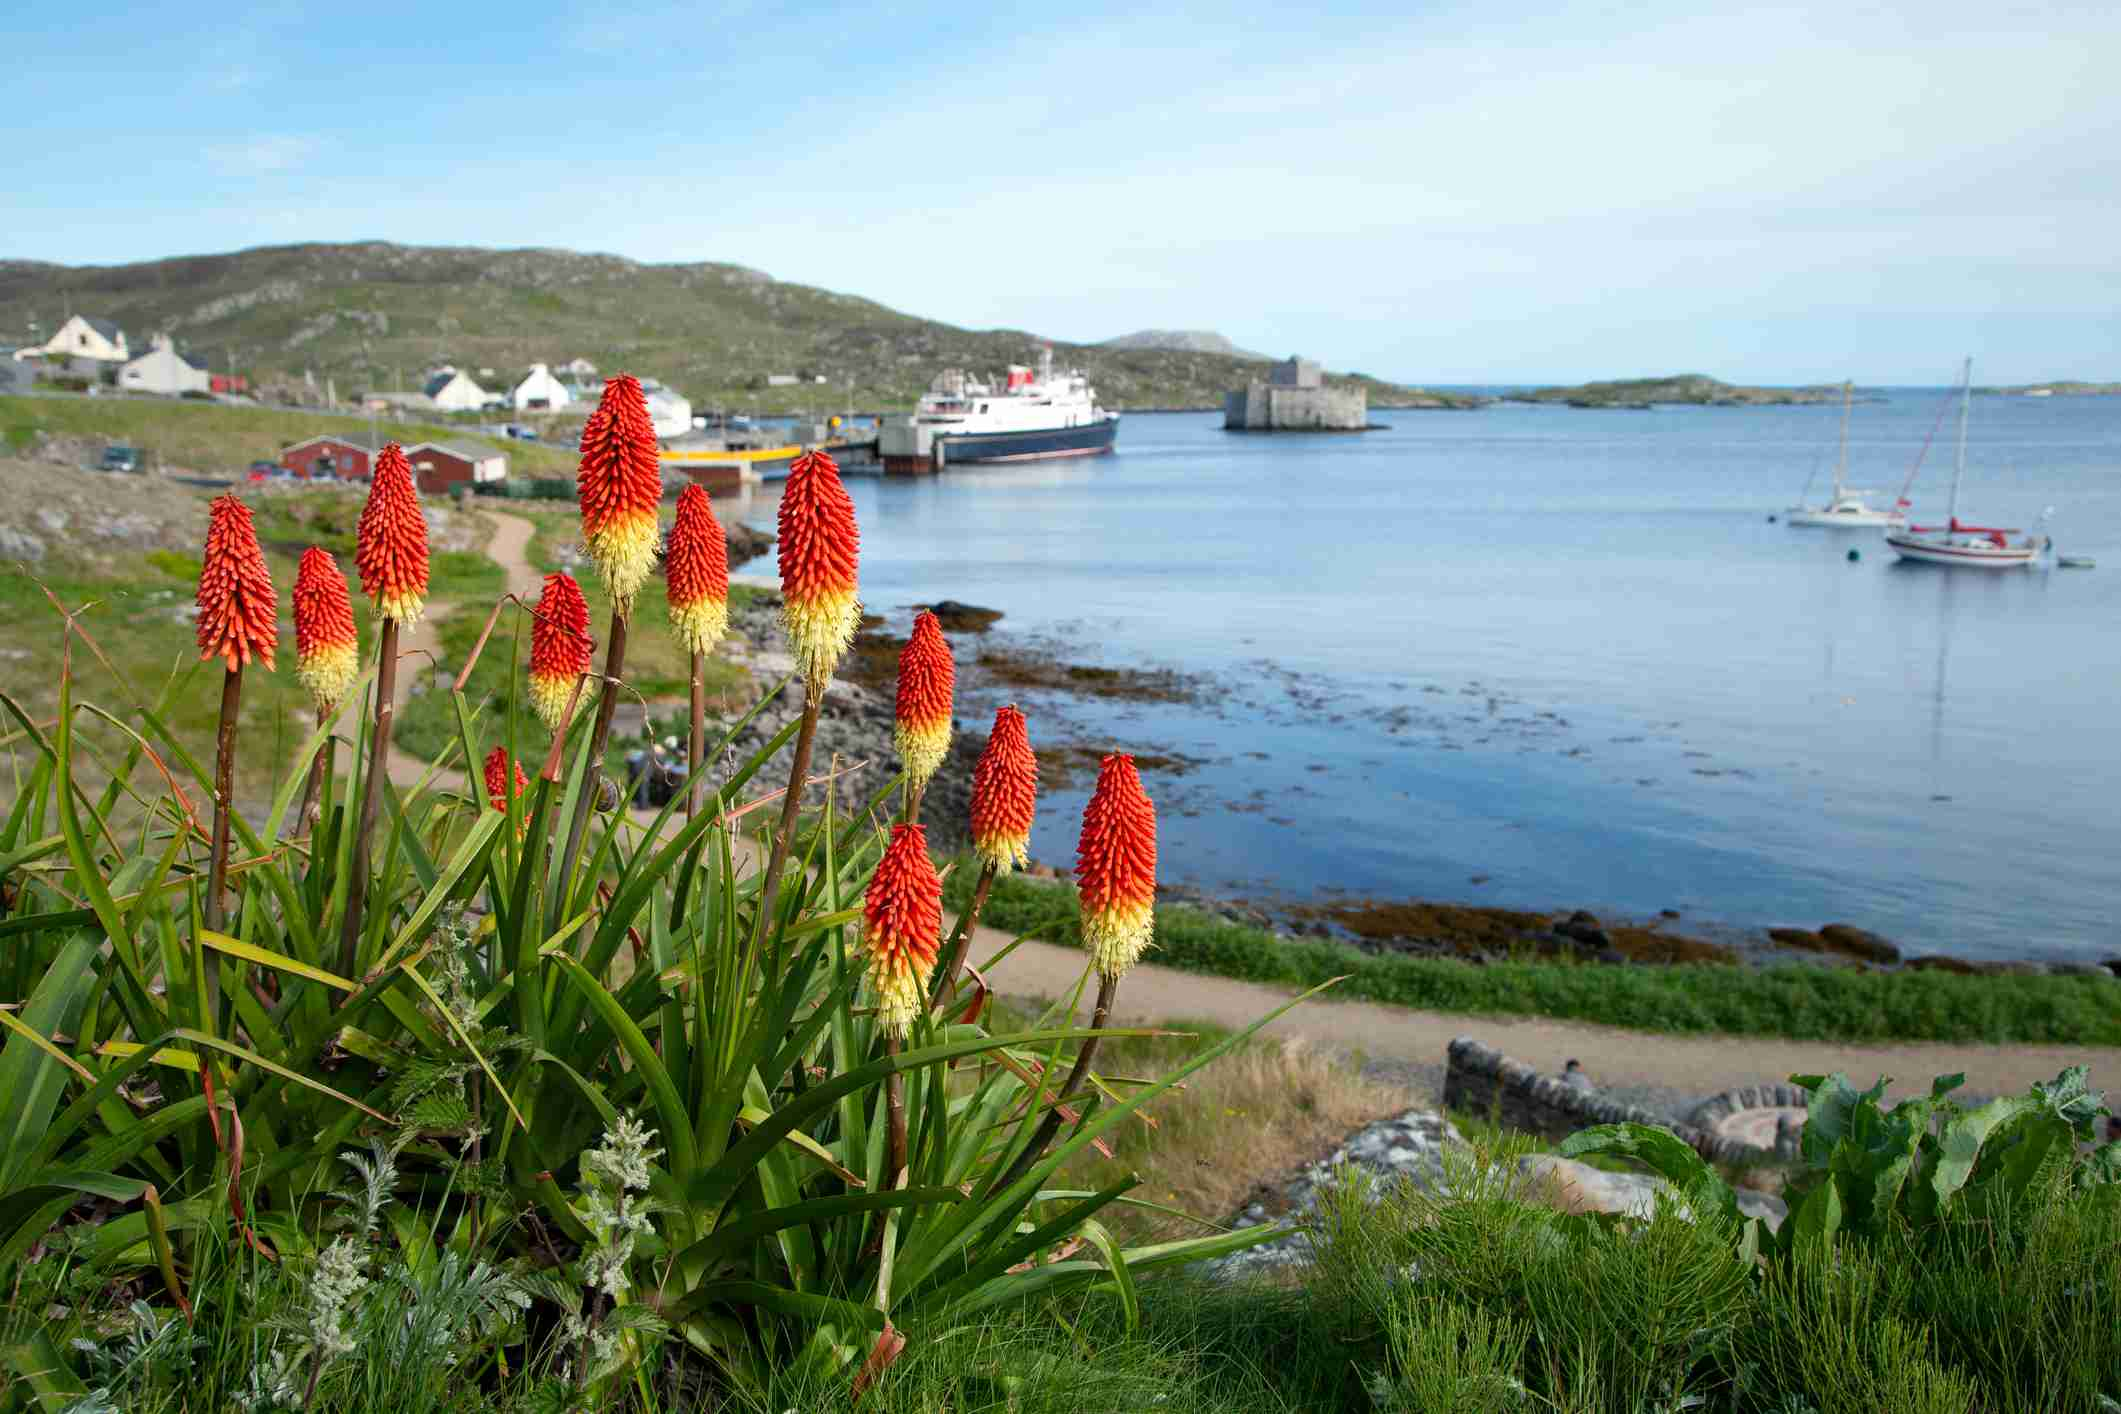 Red hot poker plants blooming against an ocean backdrop.